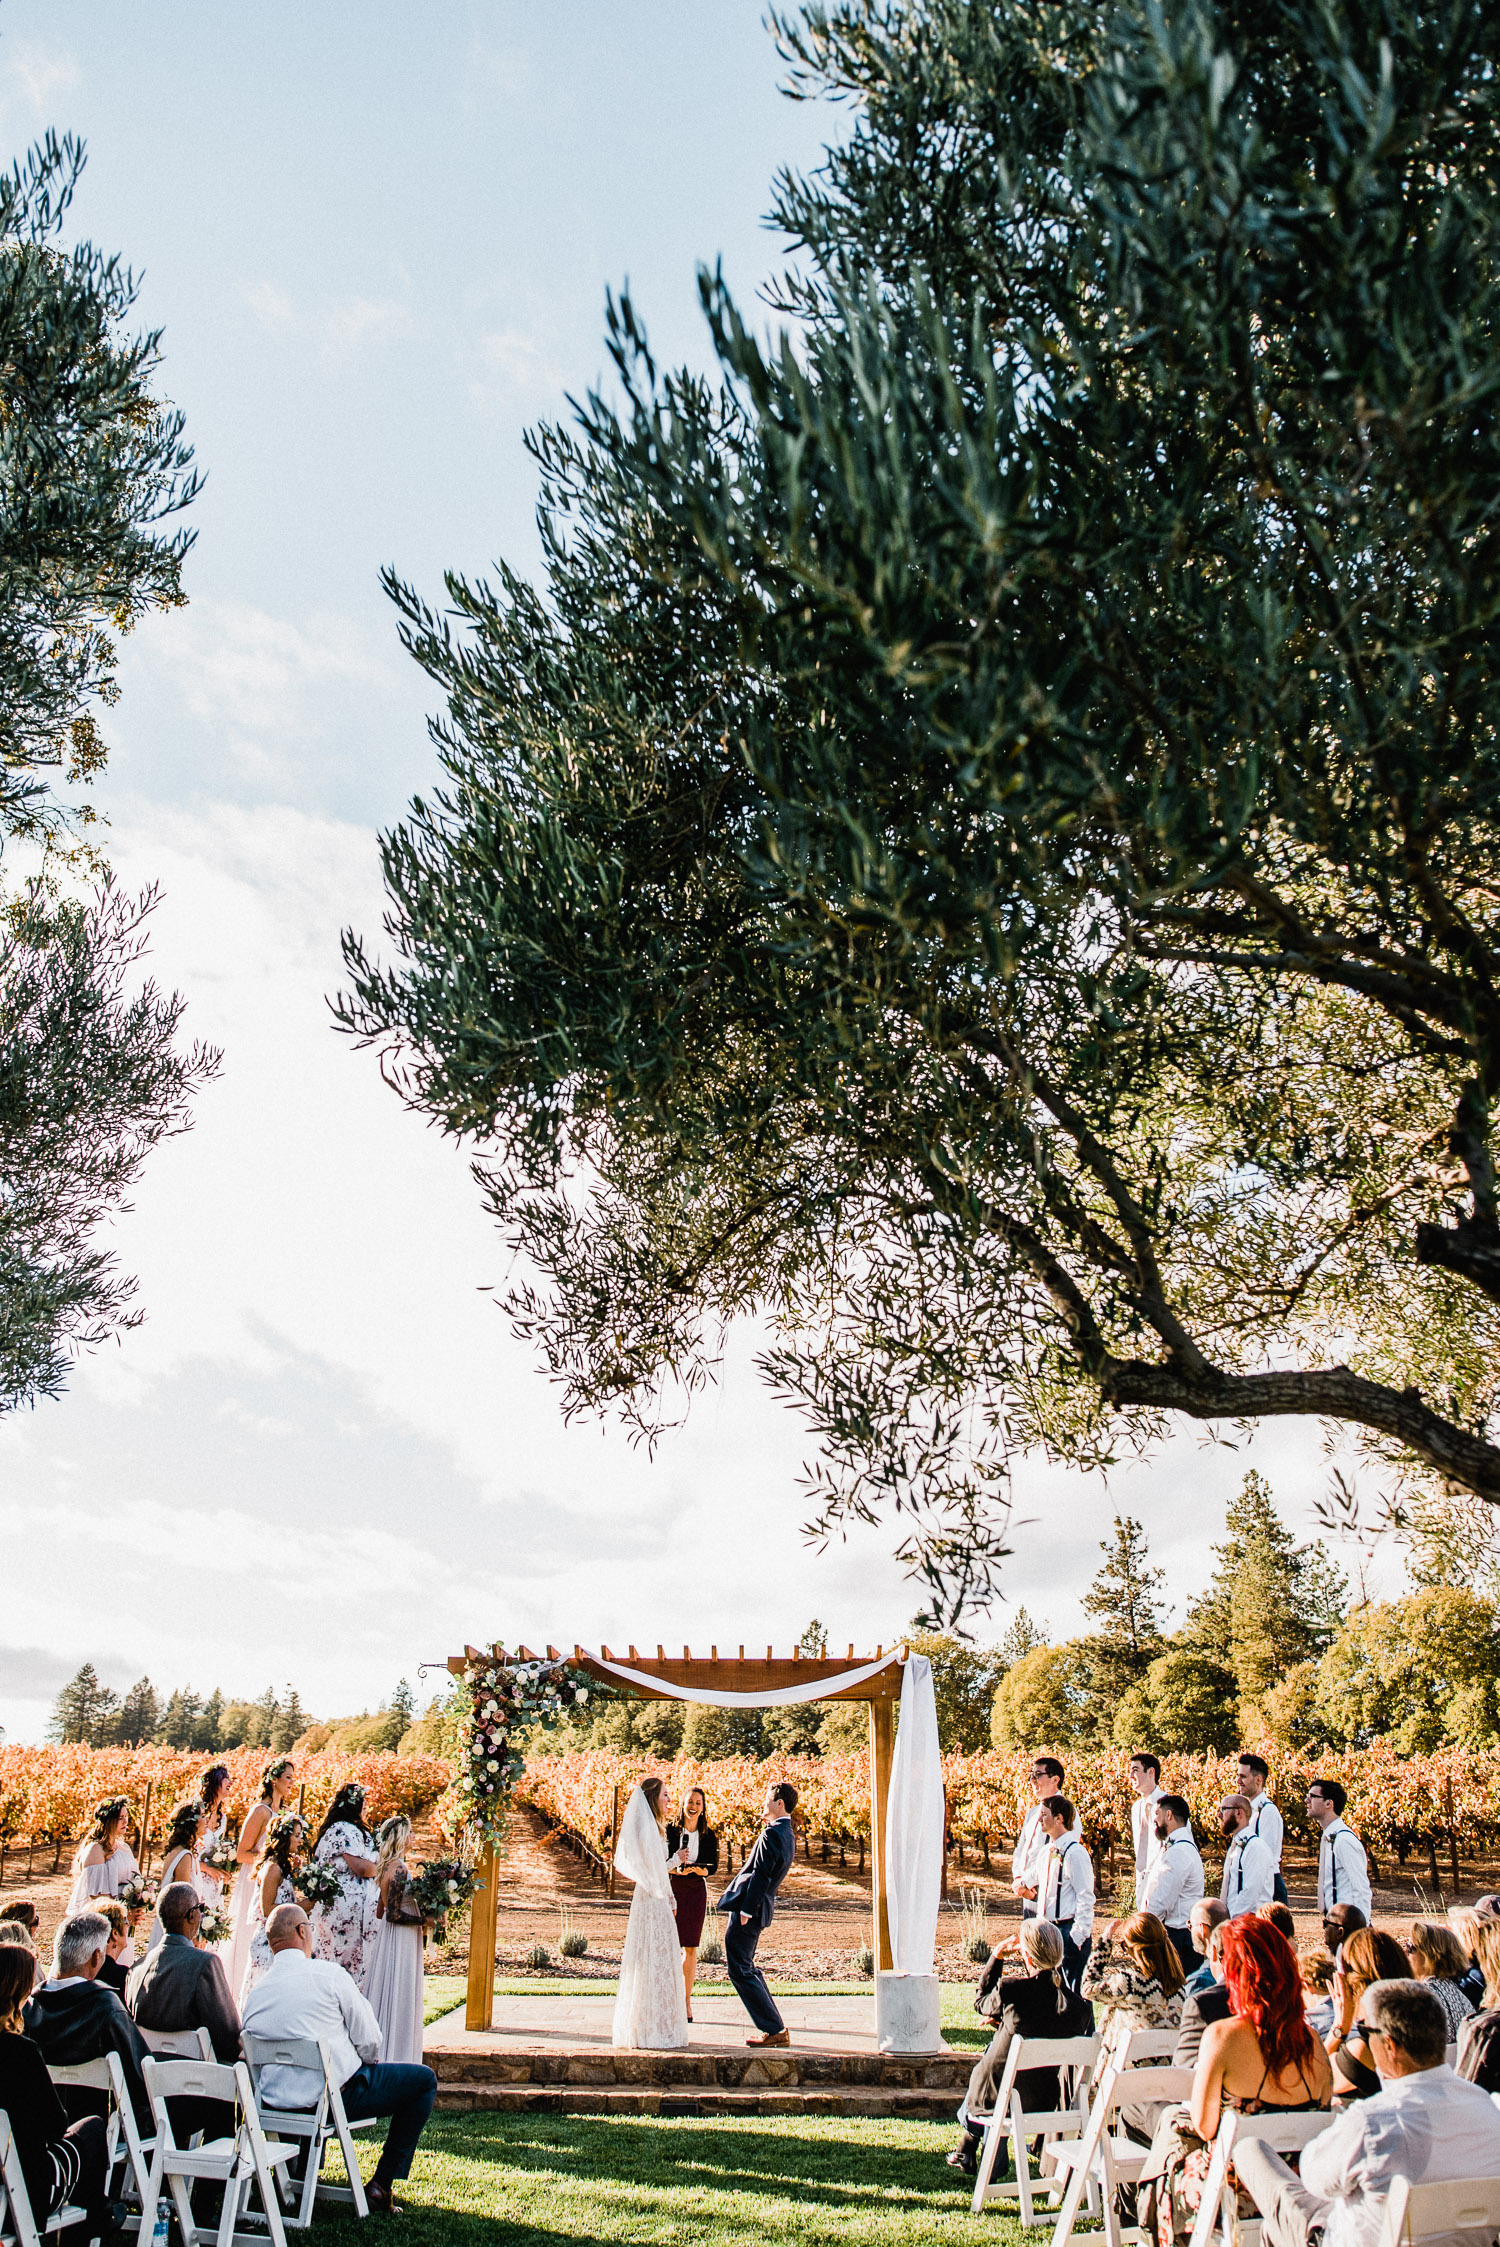 Wedding at Boatique Winery in Kelseyville, CA